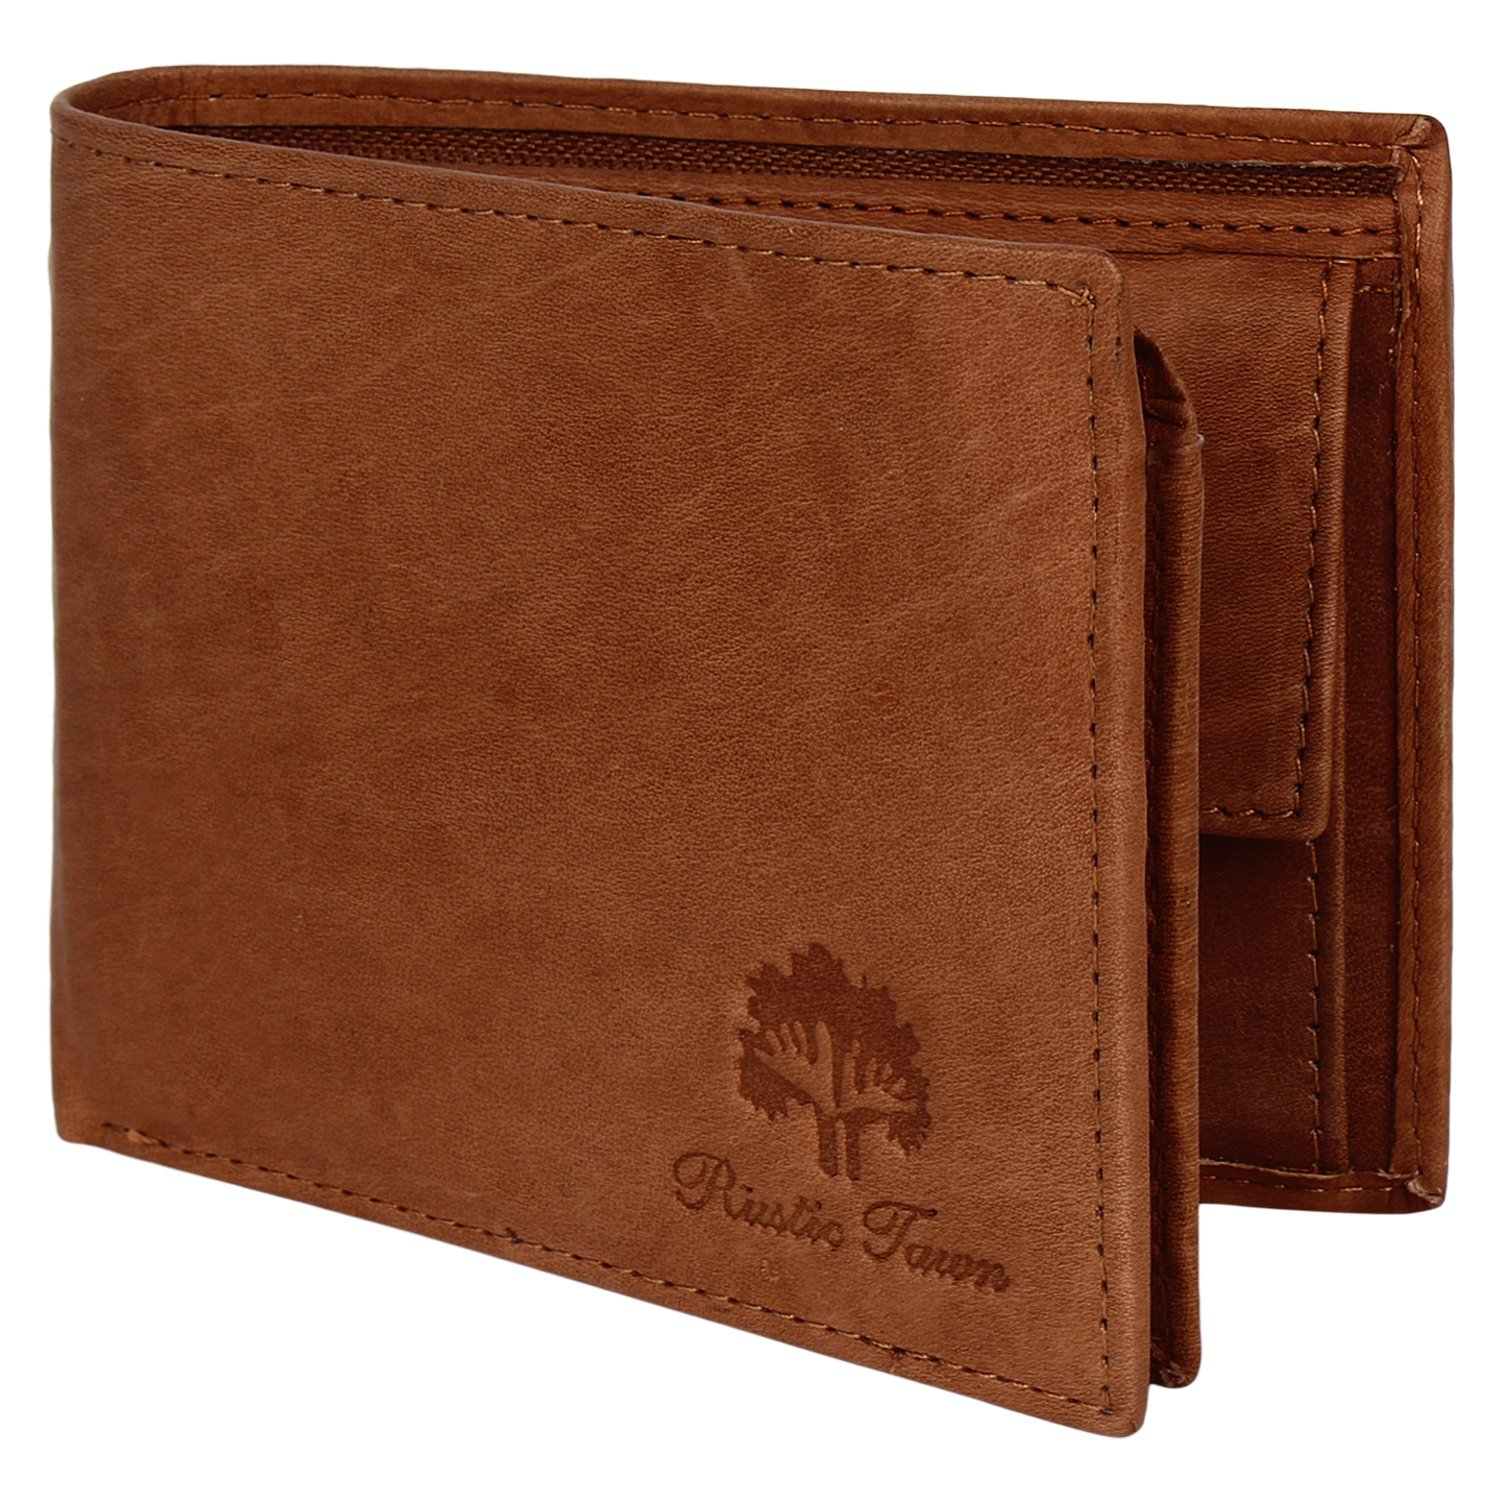 Wallet for Men-Genuine Leather RFID Blocking Bifold Wallet with Coin Pocket